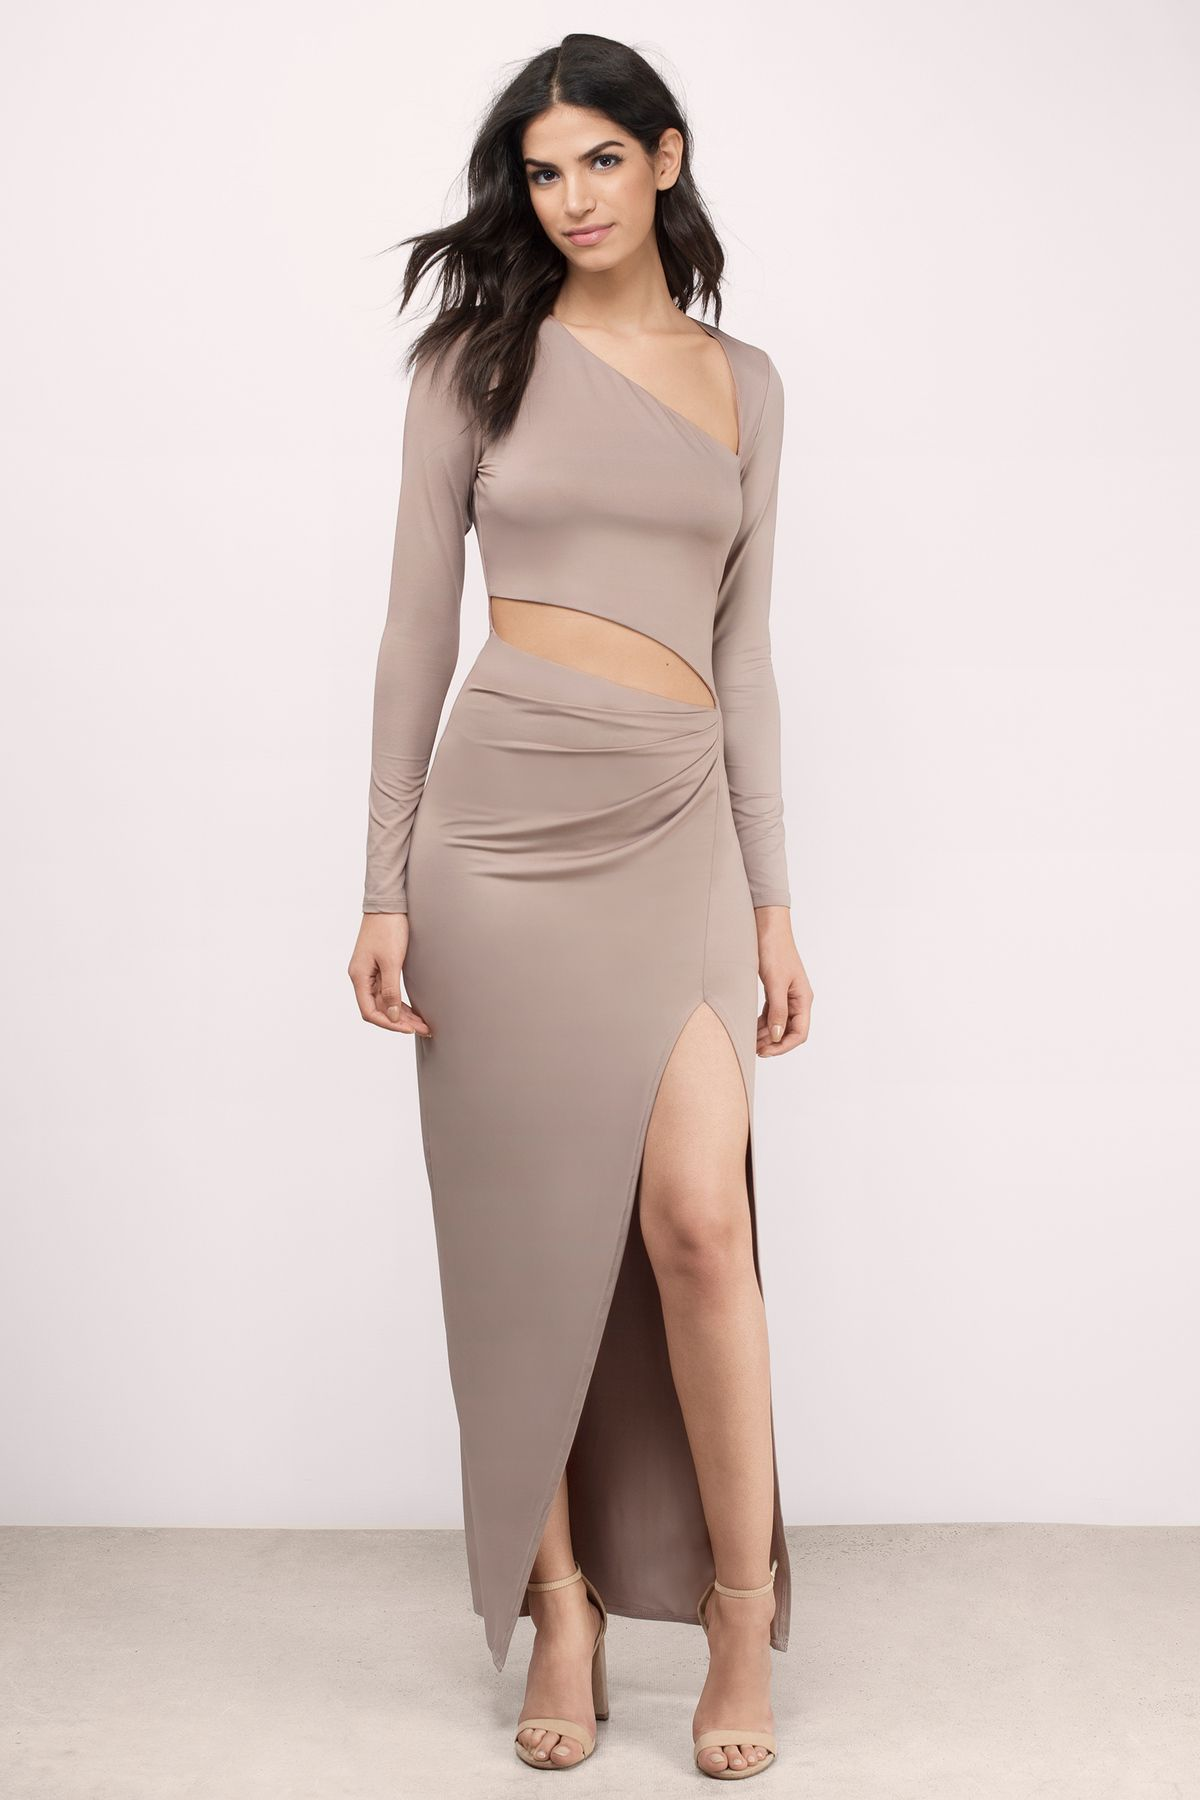 Kris cut out maxi dress maxi dresses taupe and black